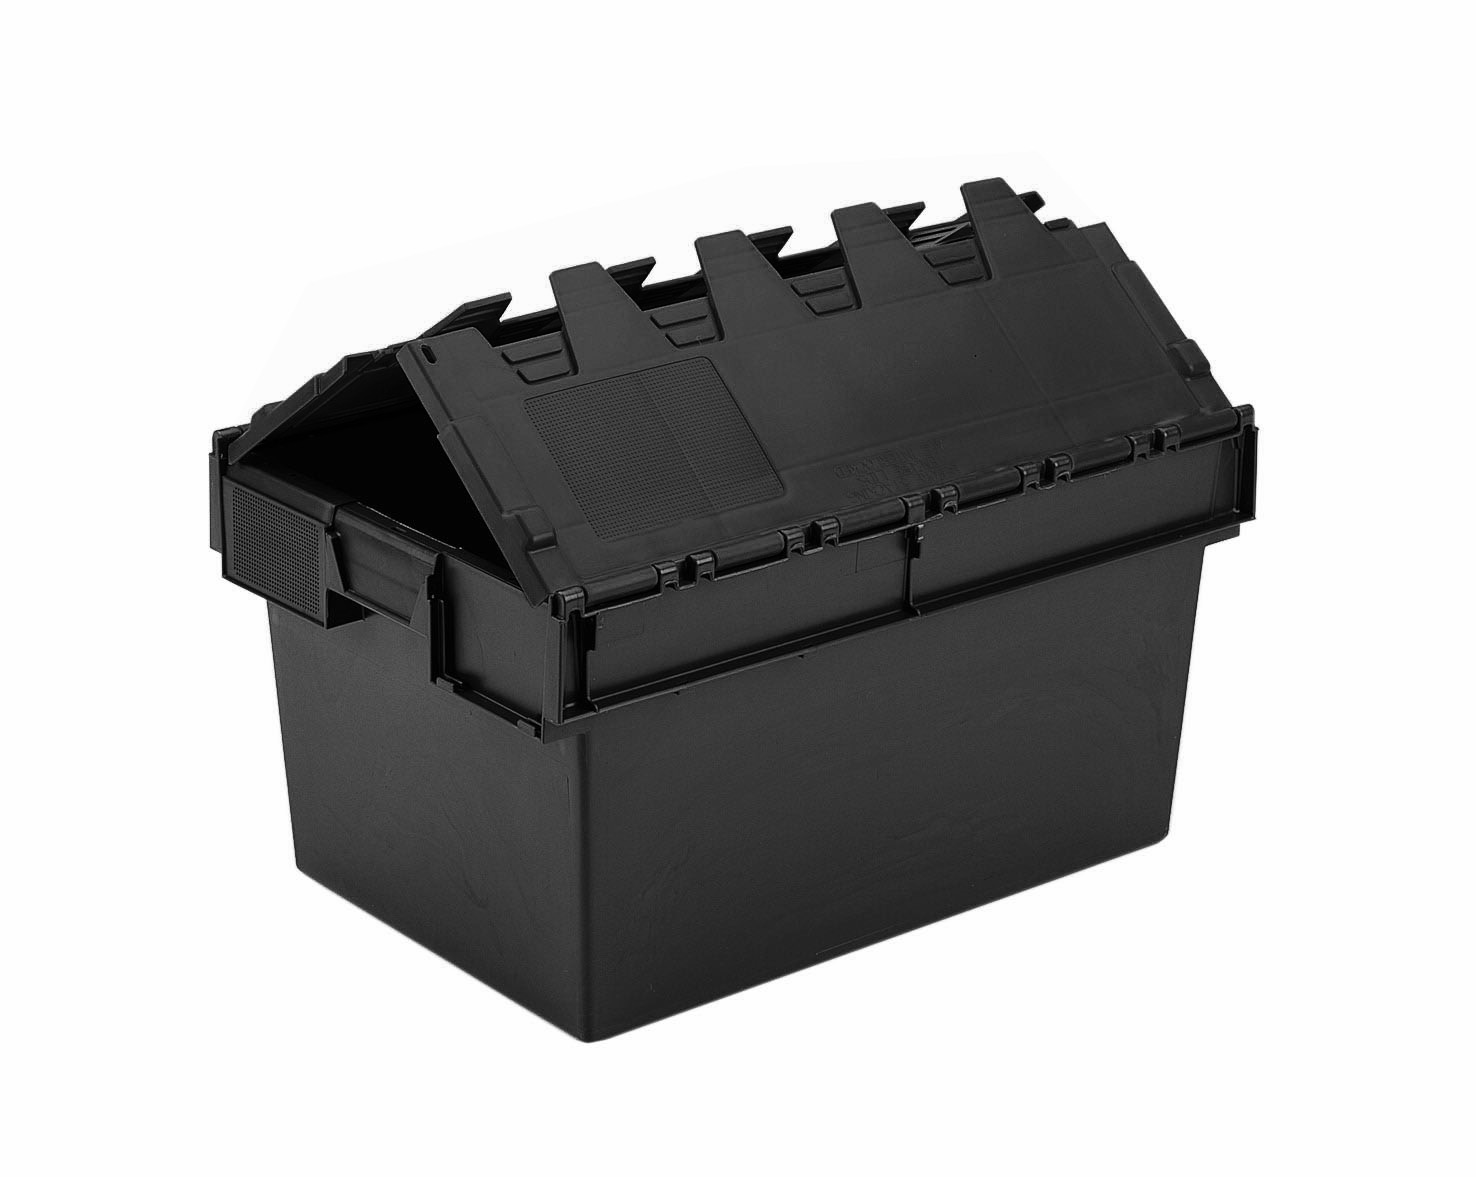 54l Attached Lid Container 600 X 400 X 320h Mm